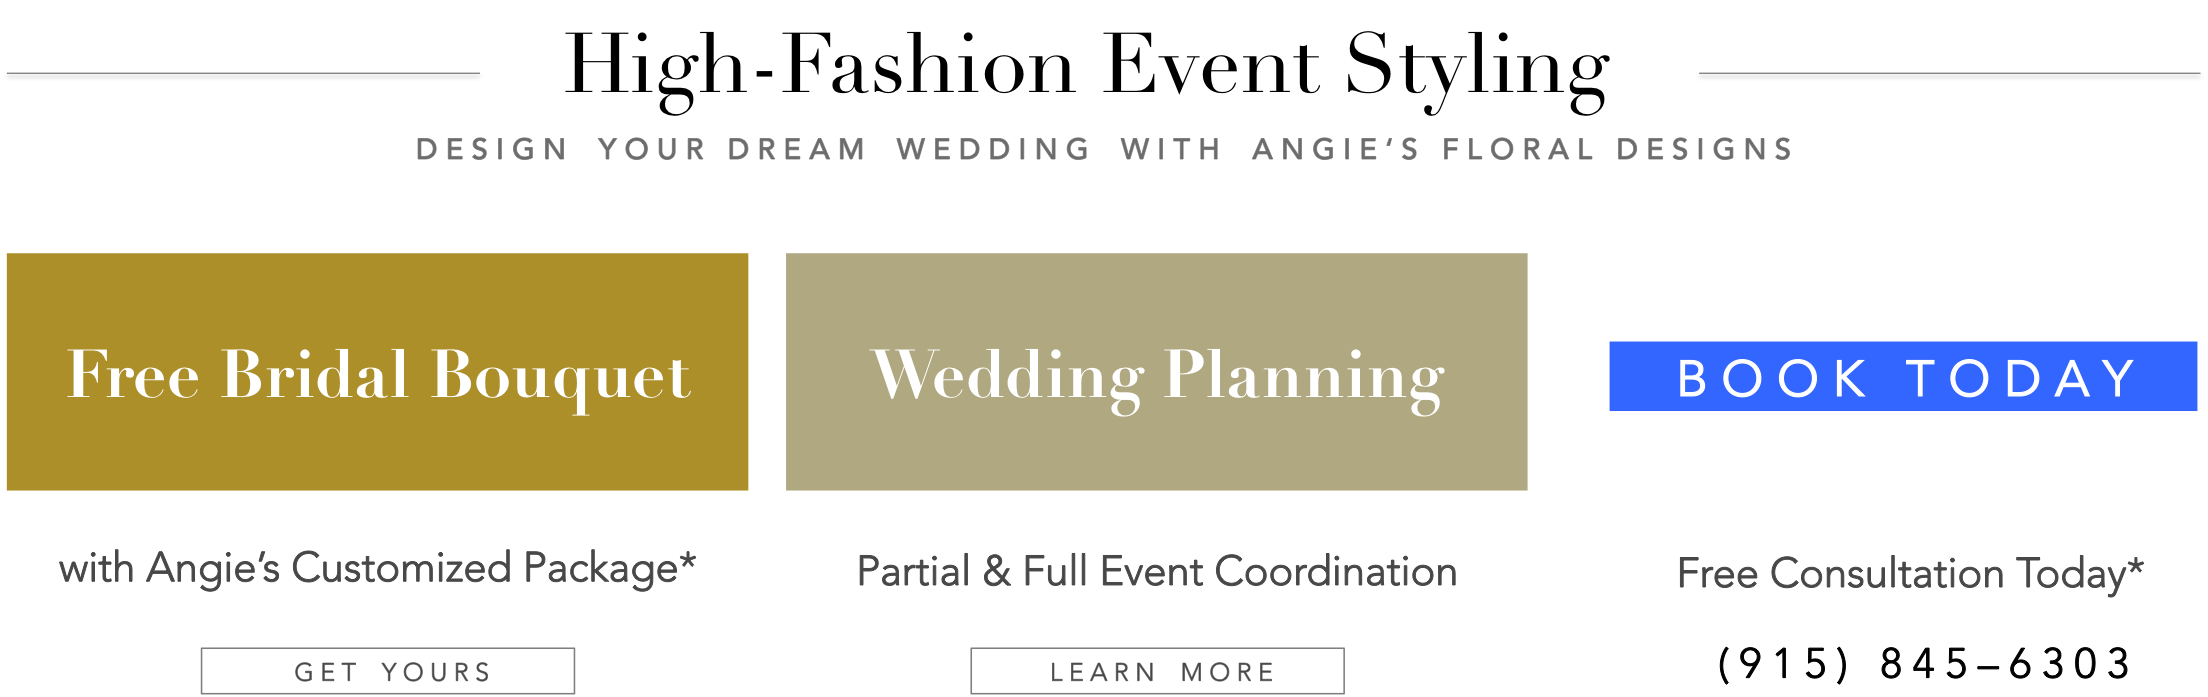 angies-floral-book-weddings-el-paso-and-events-designs-high-fashion-el-paso-weddings-el-paso-bridal-bouquet-el-paso-texas-wedding-el-paso-flowershop-florist-bodas-el-paso-bridal-bouquets-bridal-items-shop-79912.png